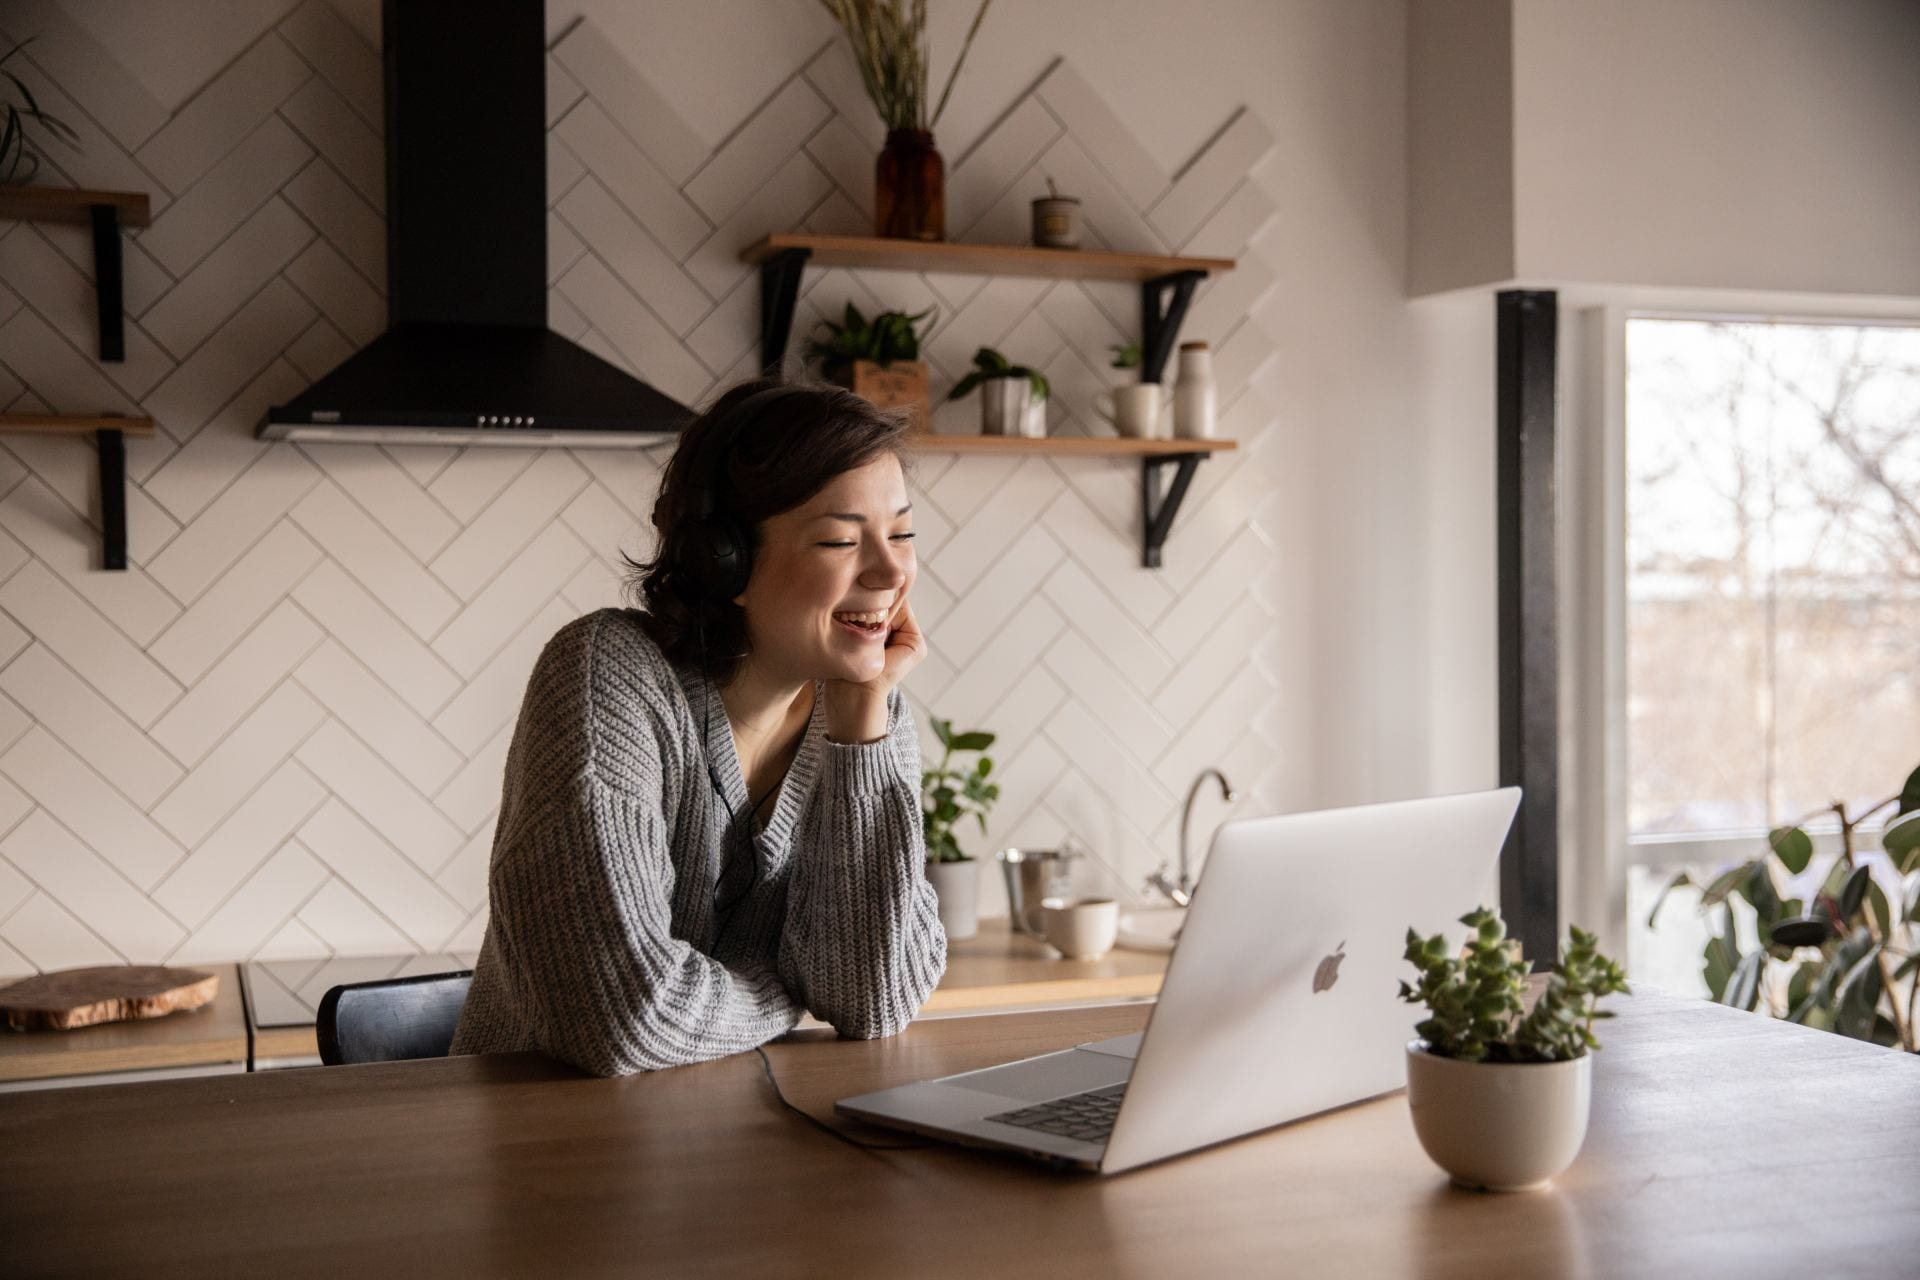 Woman laughing in front of a laptop